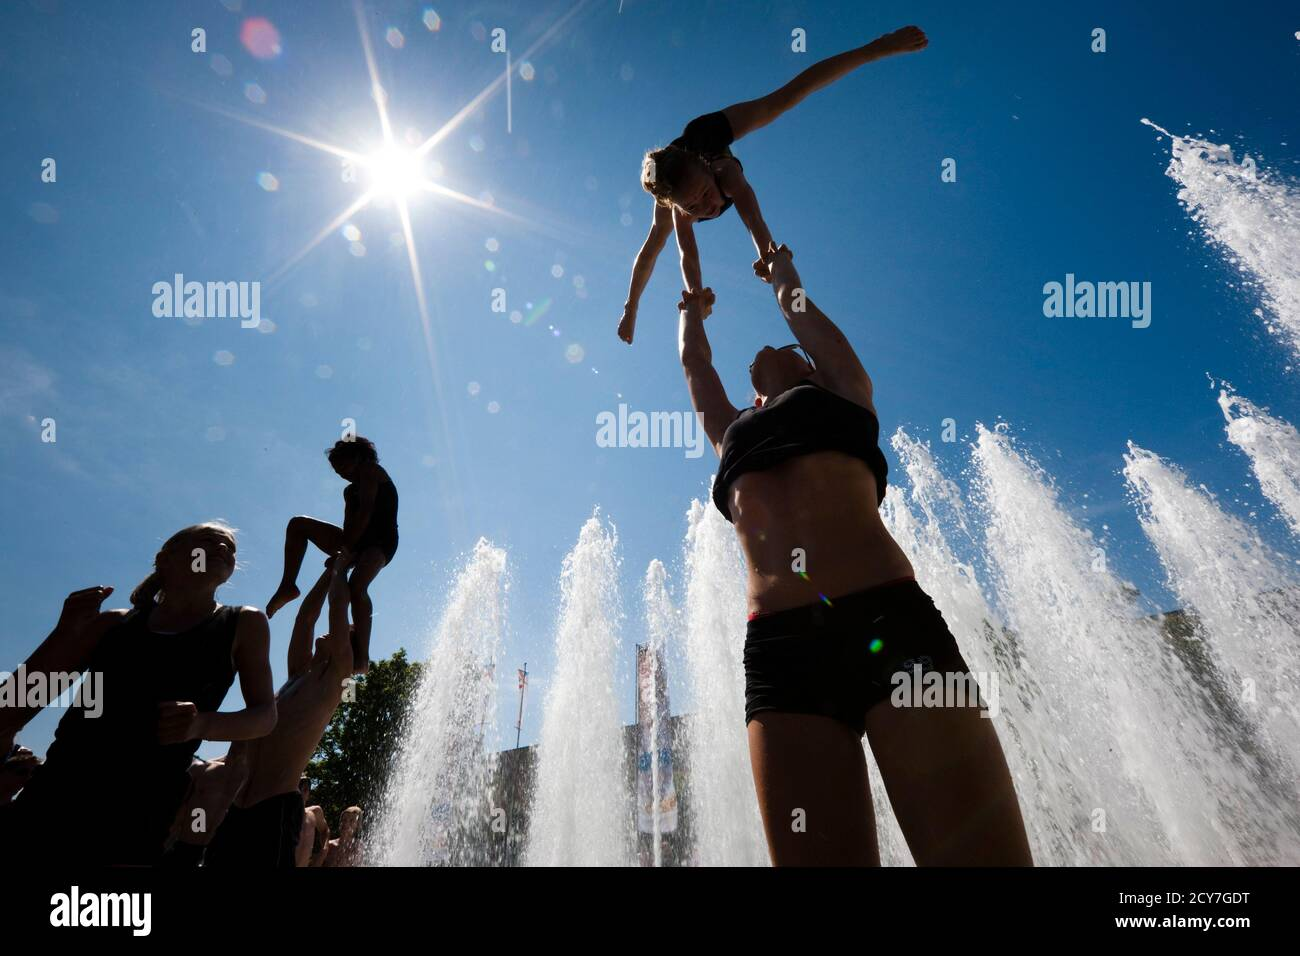 Belgian gymnasts rehearse in a fountain on the second day of the 2011 World Gymnaestrada in Lausanne July 11, 2011. More than 20,000 participants from around the world will take part in gymnastic performances over seven days at the non-competitive event.  REUTERS/Valentin Flauraud (SWITZERLAND - Tags: SPORT GYMNASTICS) Stock Photo